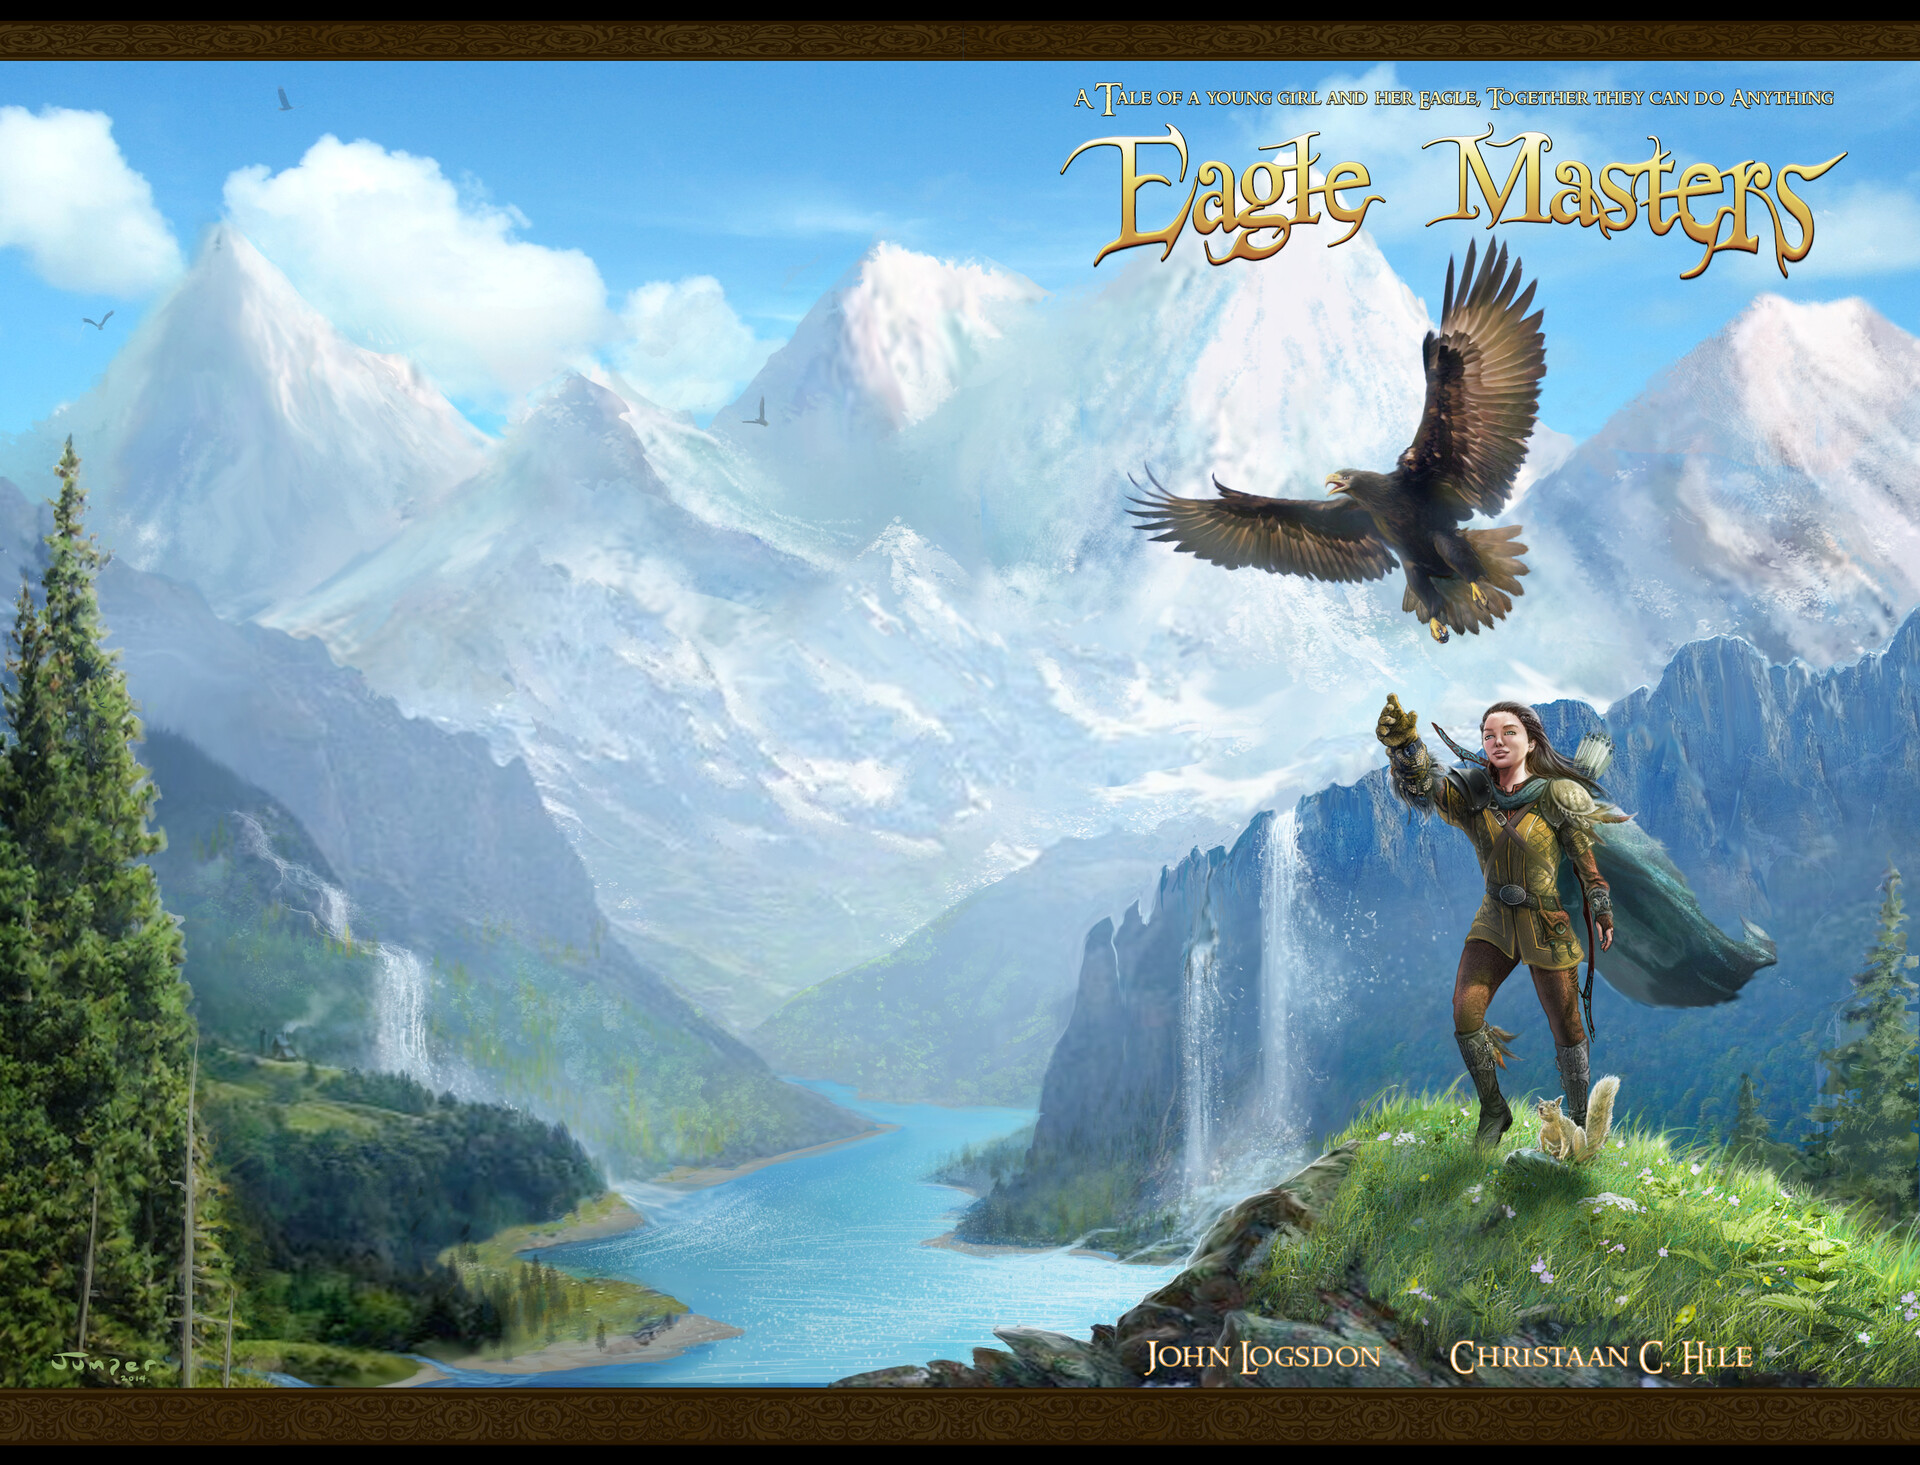 Jeff jumper eagle masters cover and logo